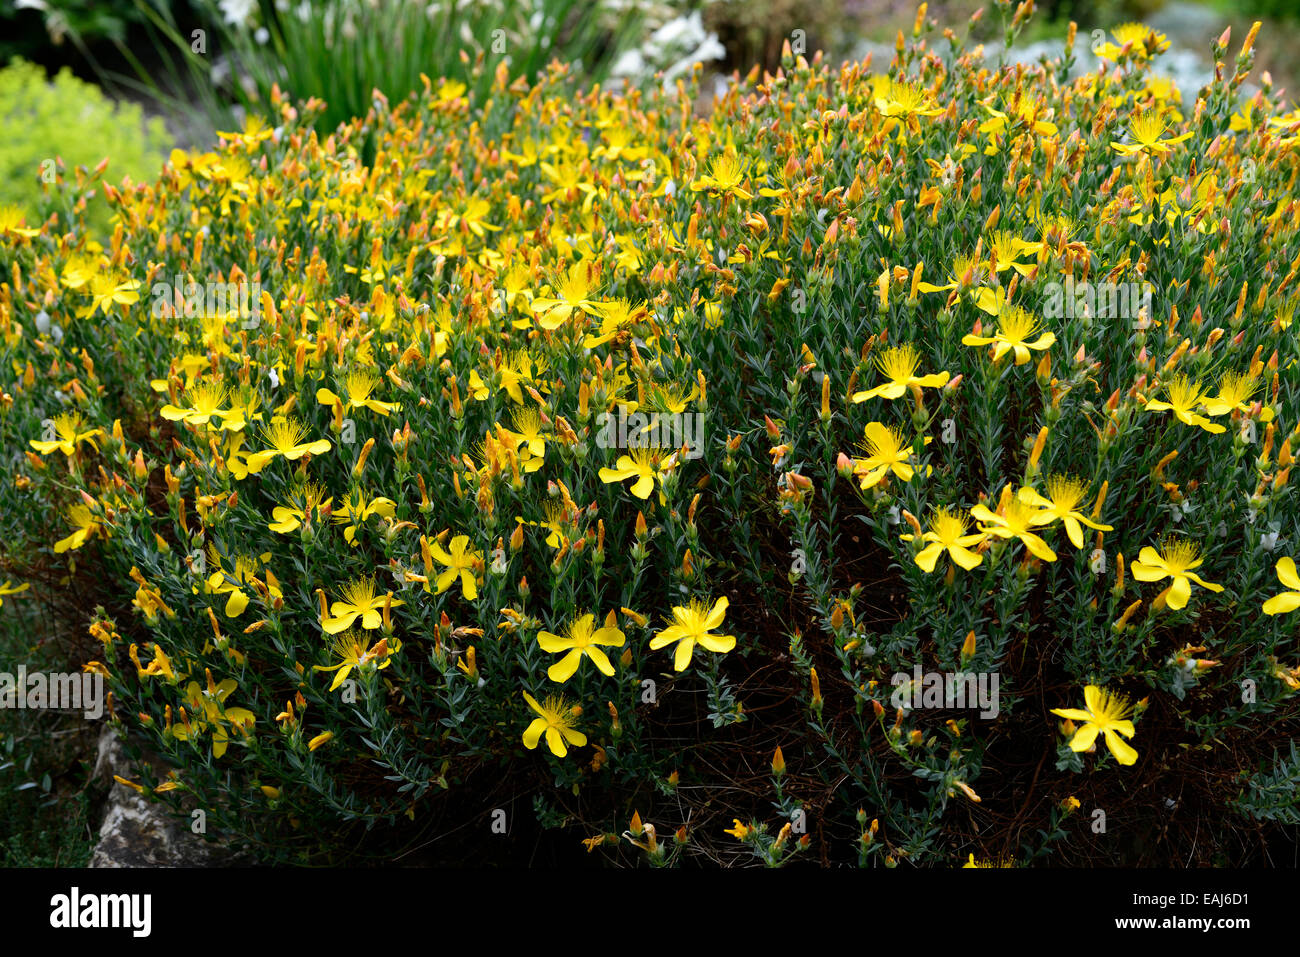 Hypericum Olympicum Yellow Flower Flowers Flowering St Johns Wort